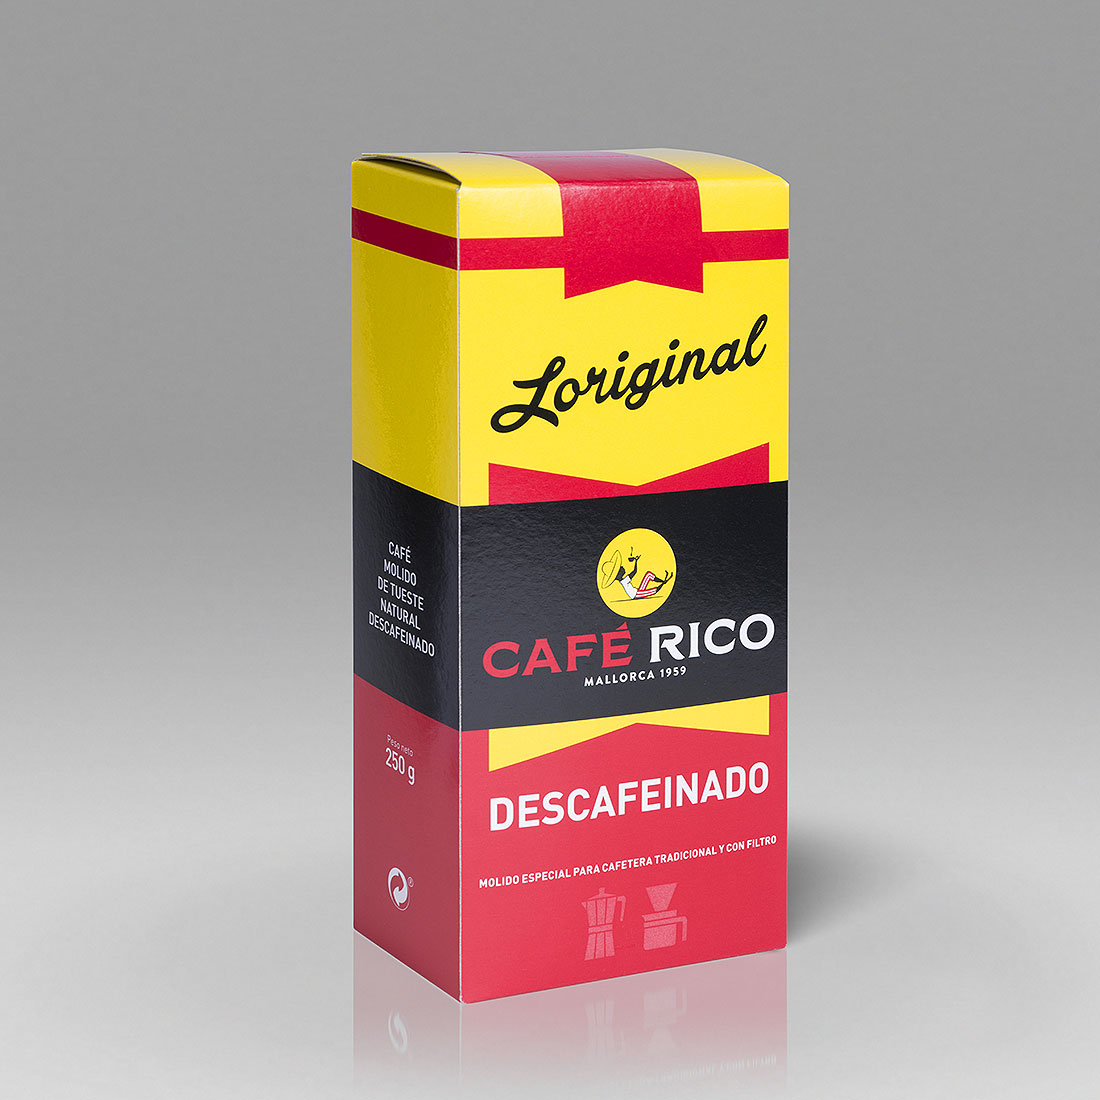 Cafe-Rico-Loriginal-Descafeinat